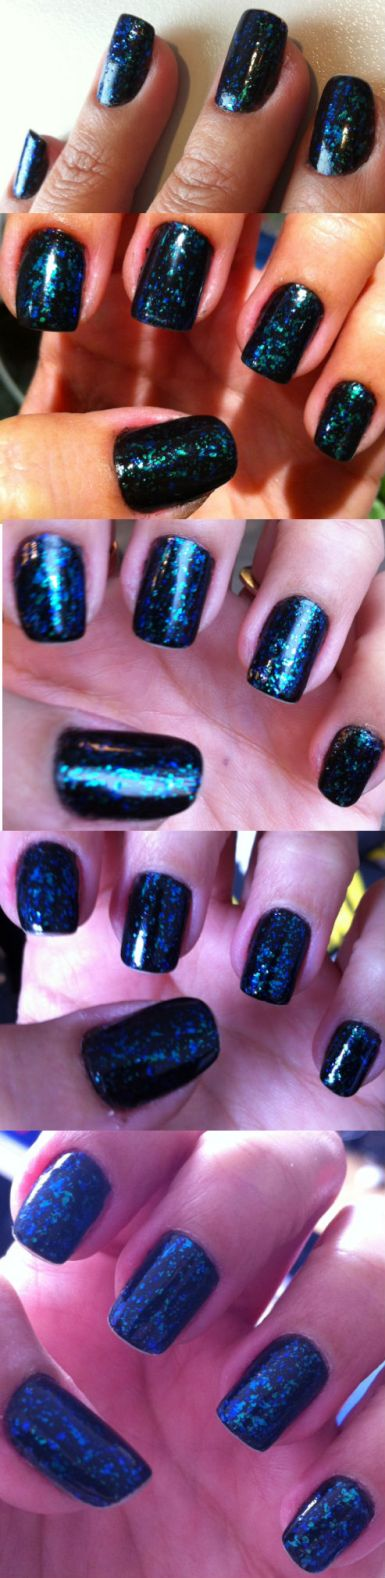 Blue and green glitter flakes nails - somanylovelythings